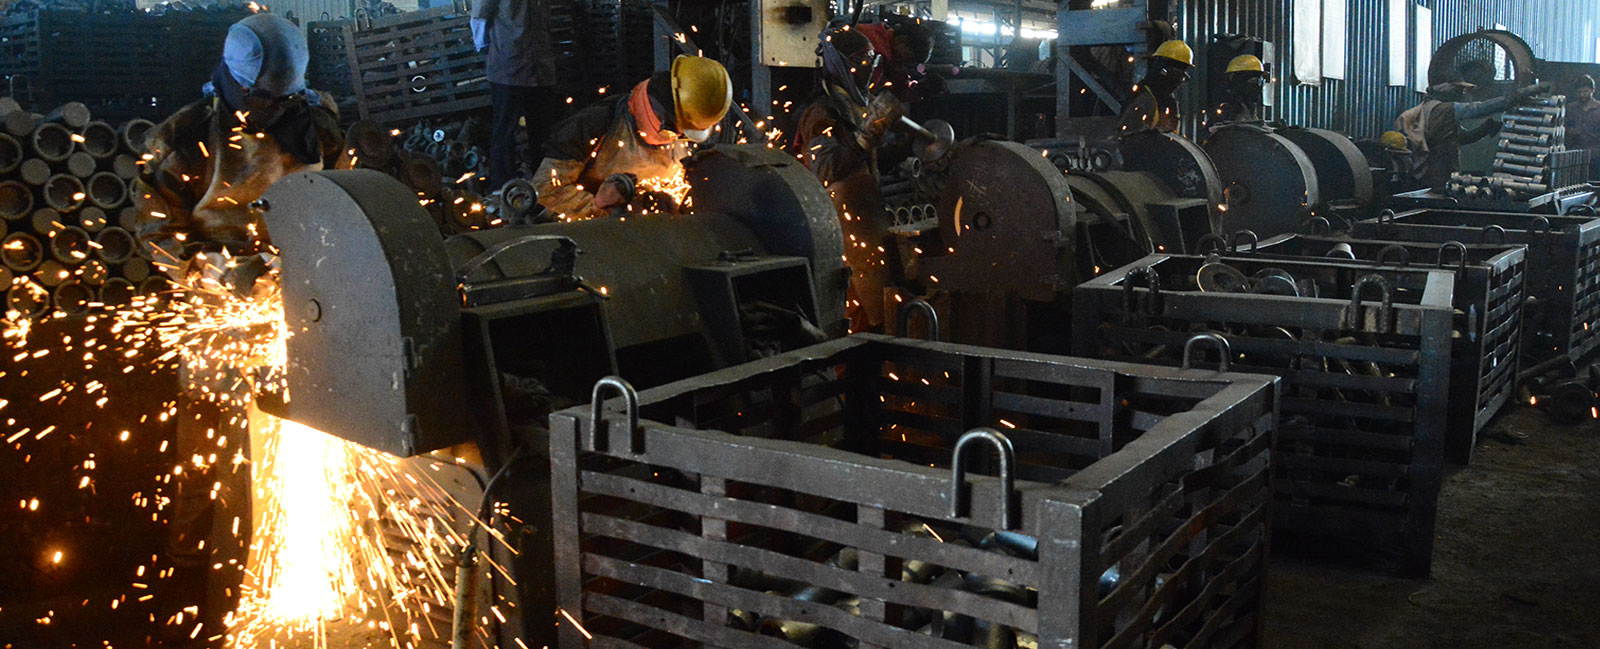 Ambar Auto Engineers | Manufacturer of Upsetter forging and